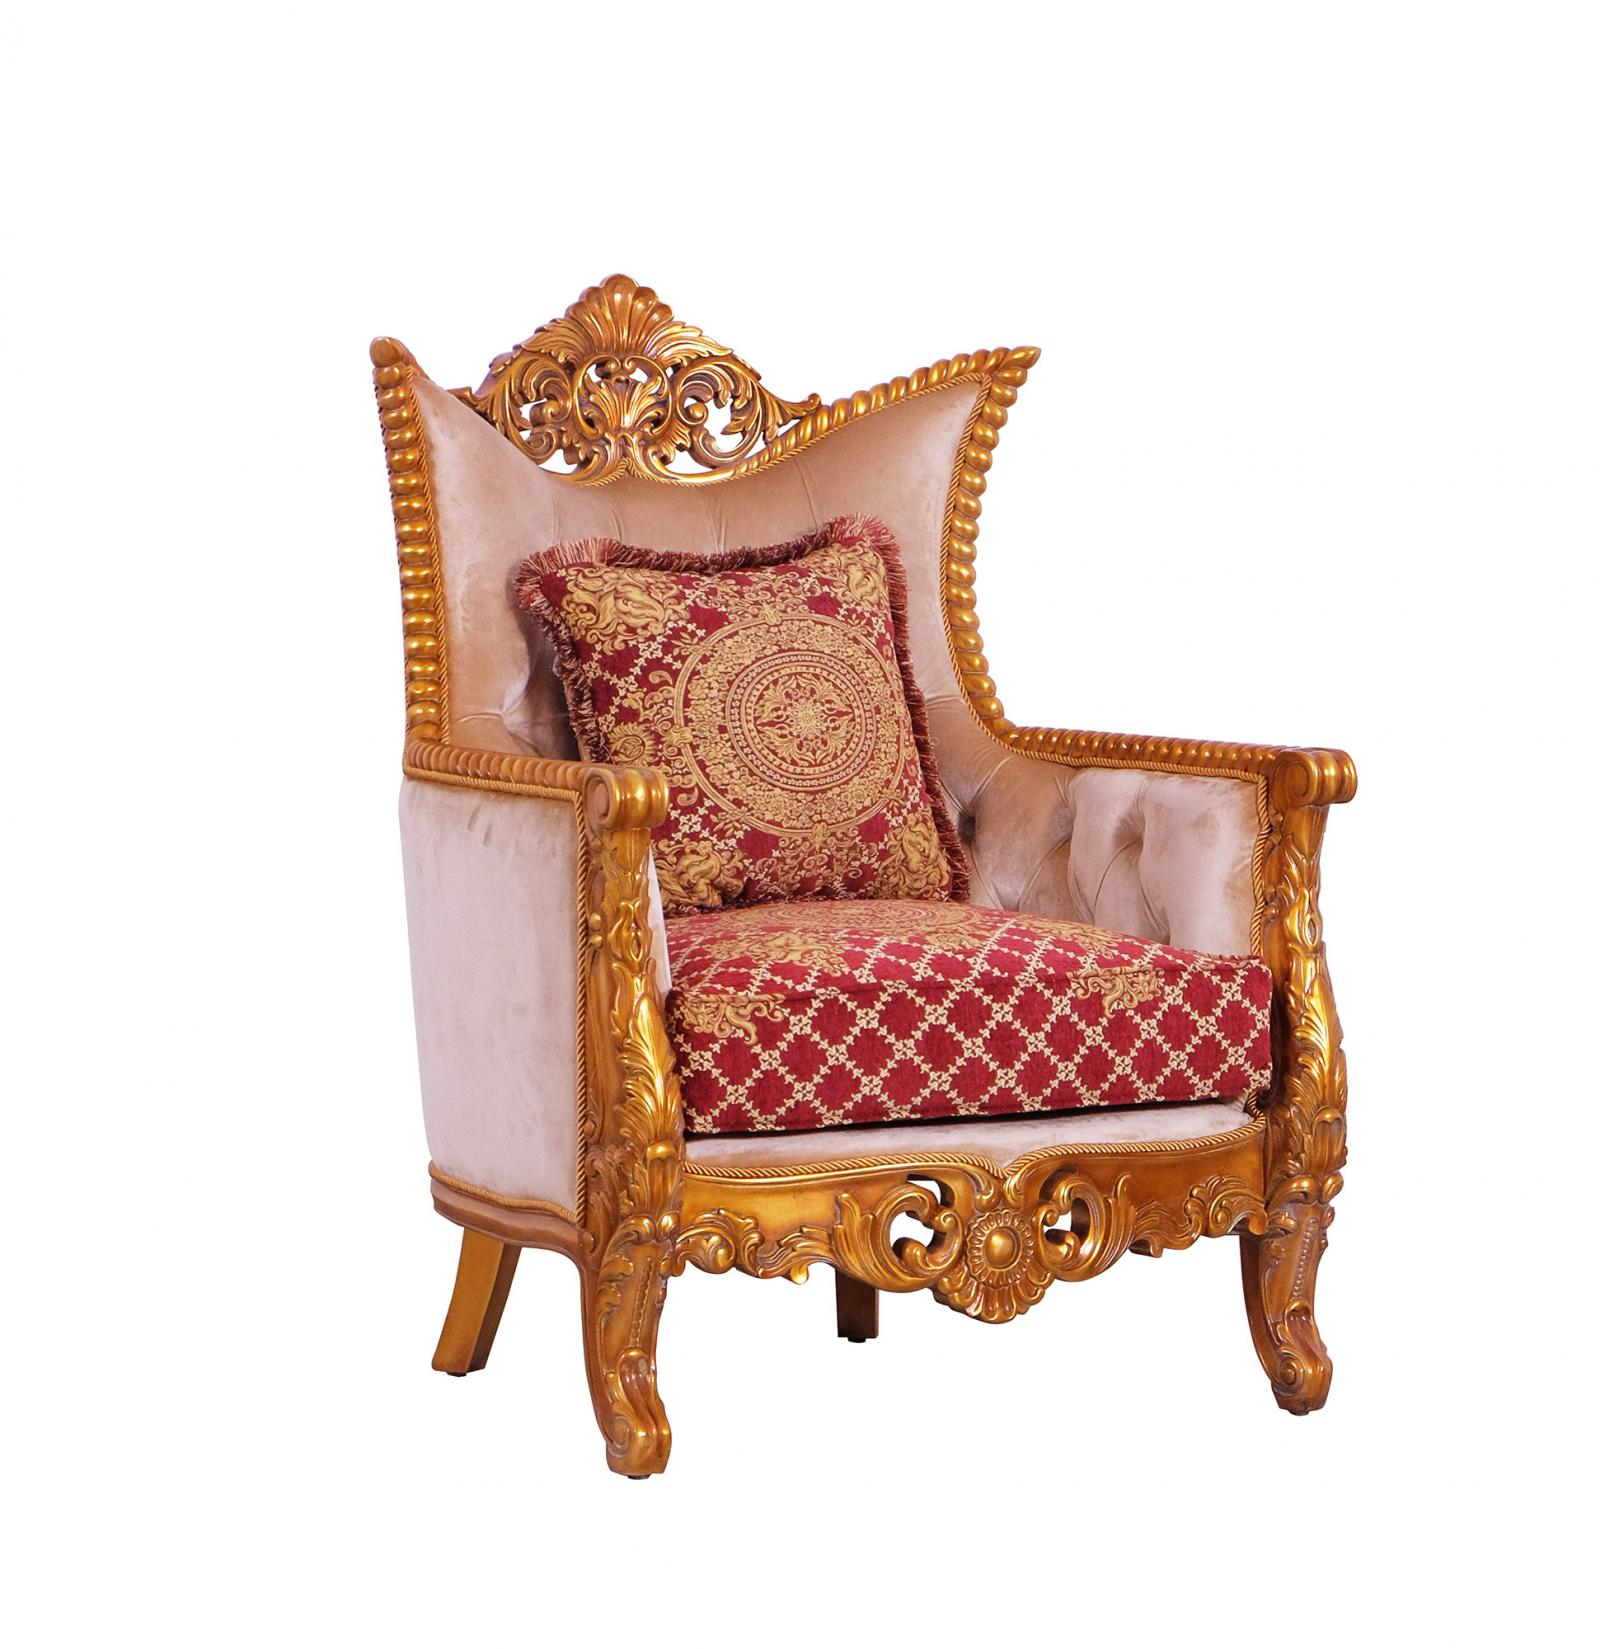 Classic  Traditional Gold  Red Wood  Solid Hardwood and Fabric Arm Chair EUROPEAN FURNITURE  31058-C